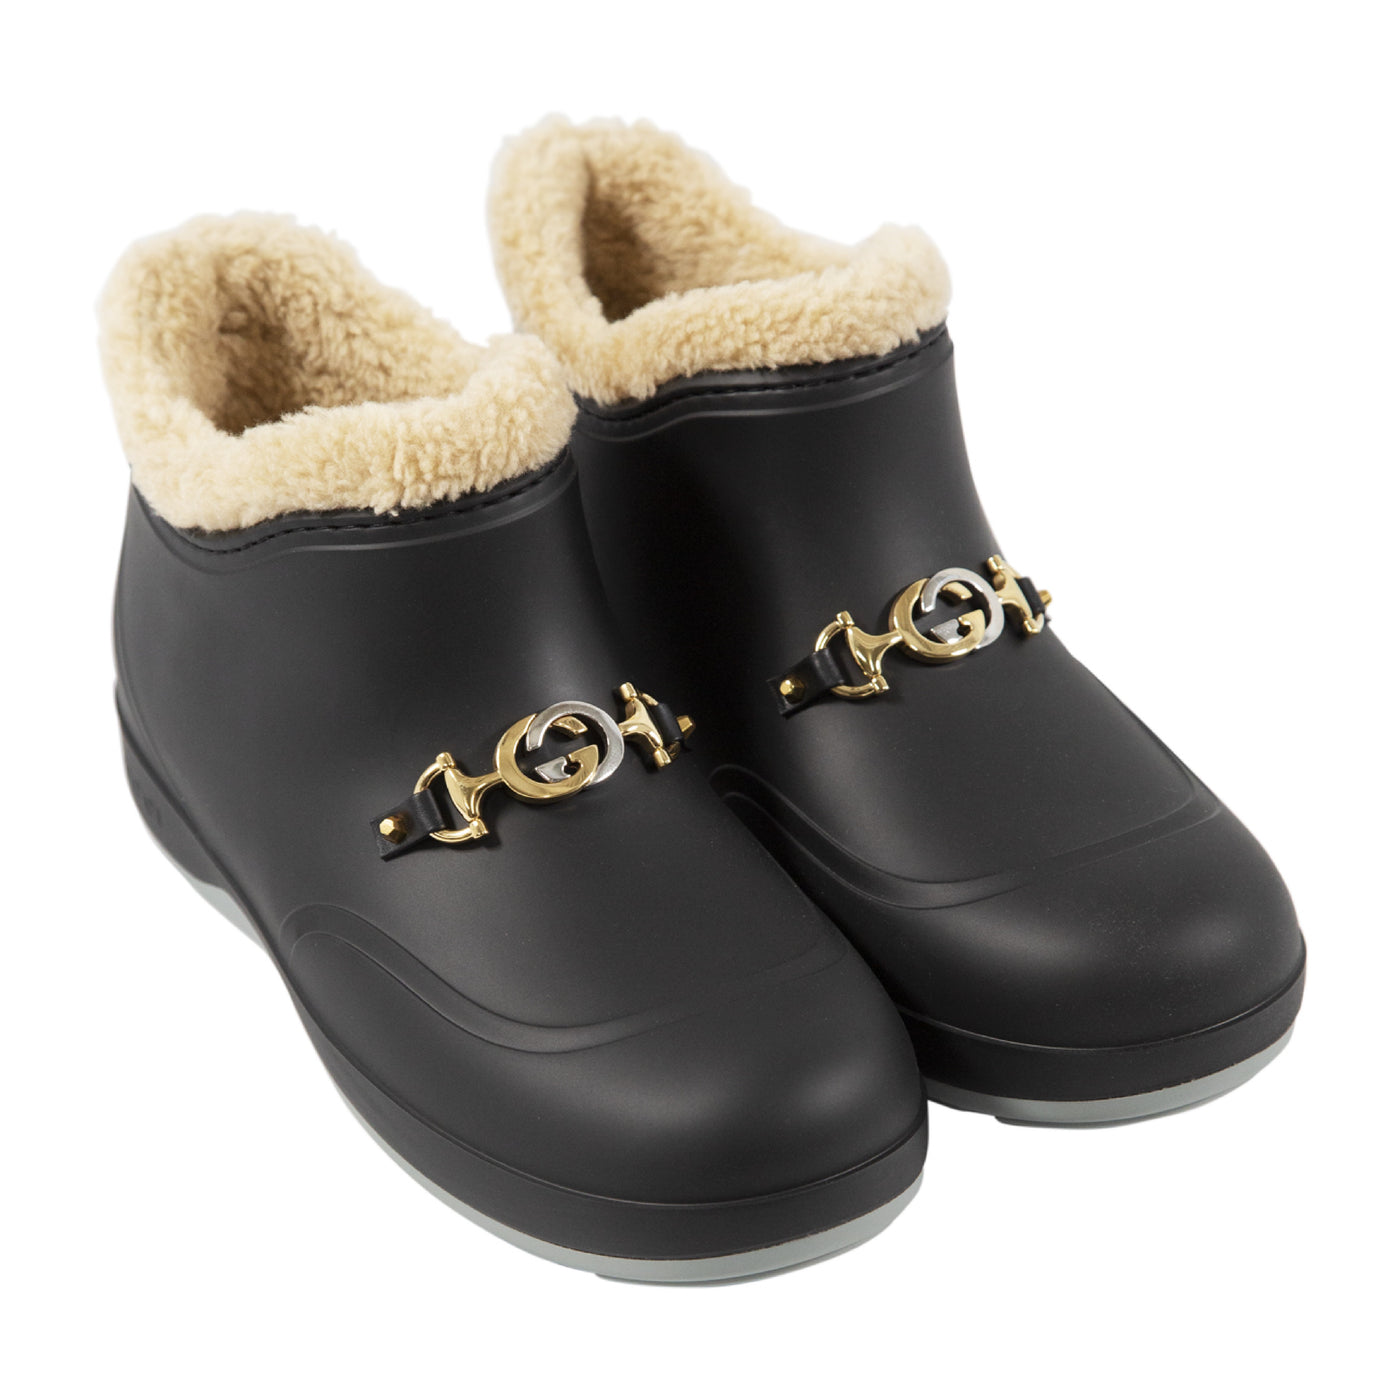 Load image into Gallery viewer, GUCCI SNOW BOOTIES BLACK